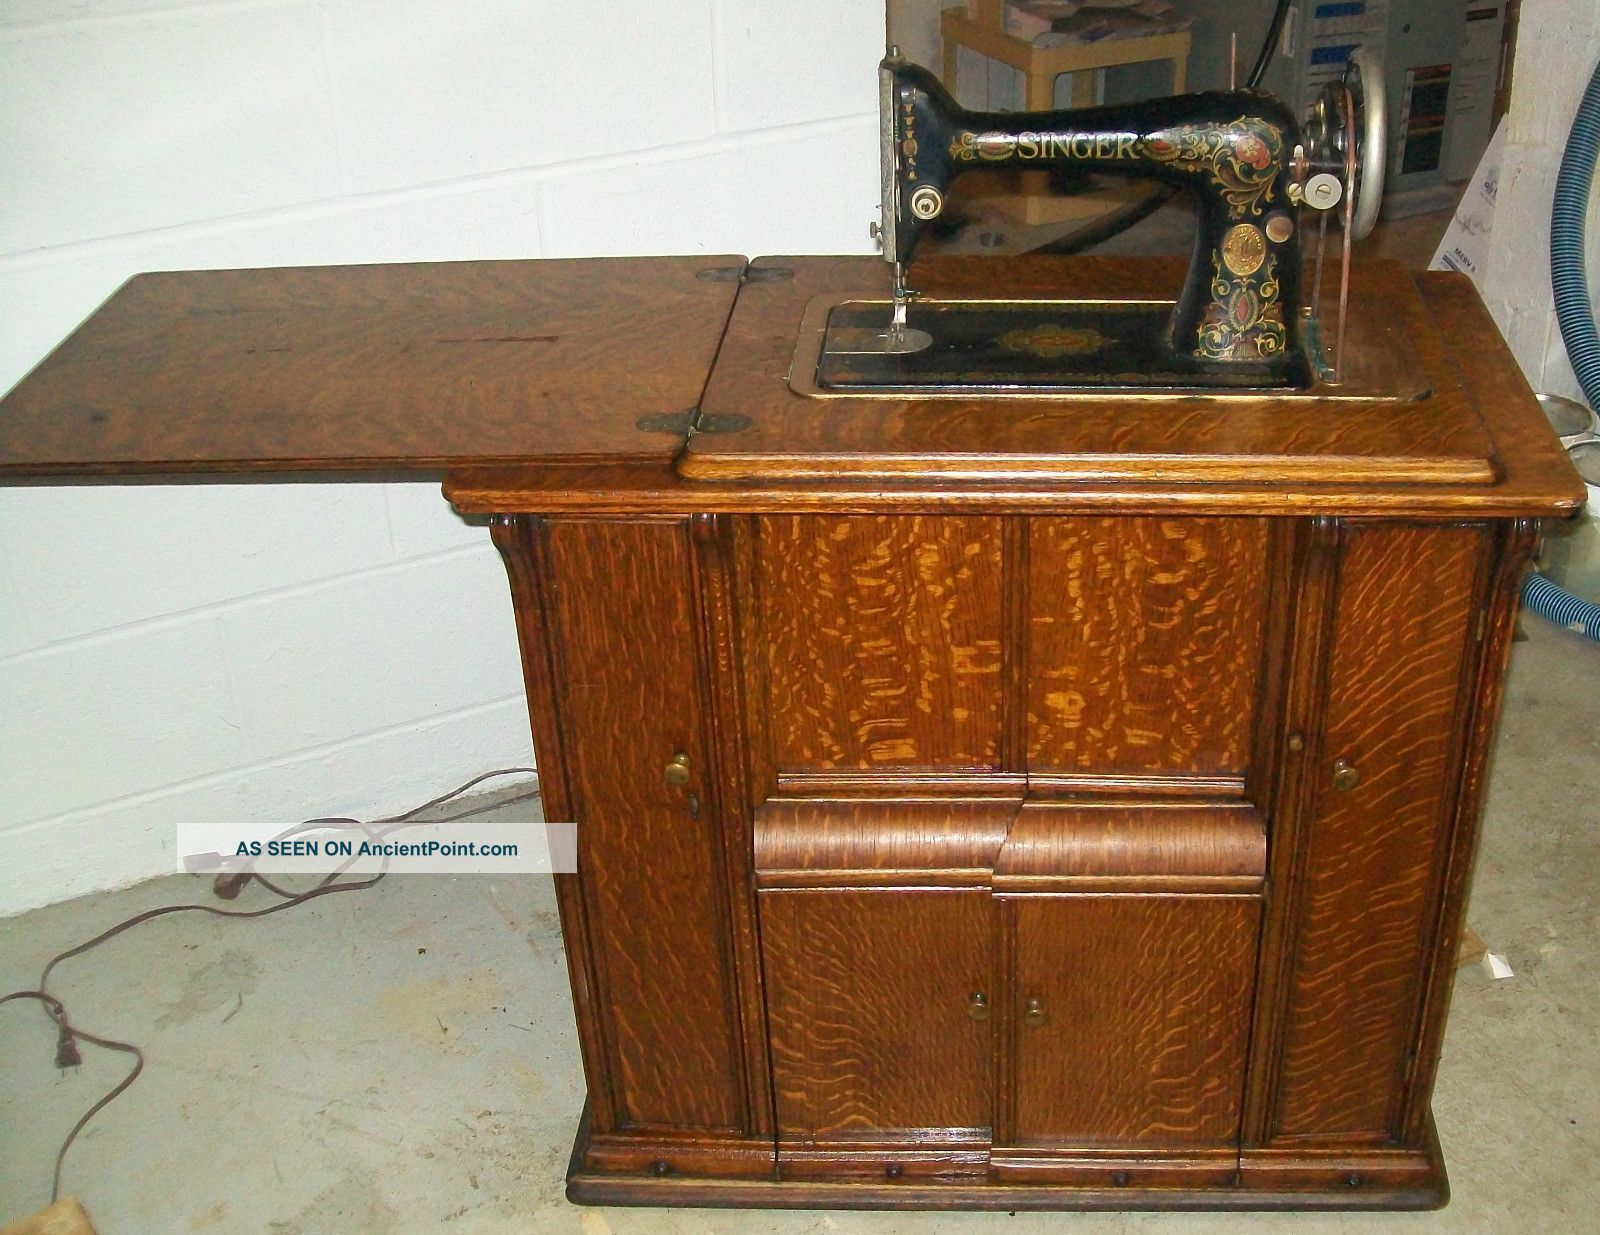 1920 Singer Sewing Machine And Parlor Cabinet, Model 66, Antique ...